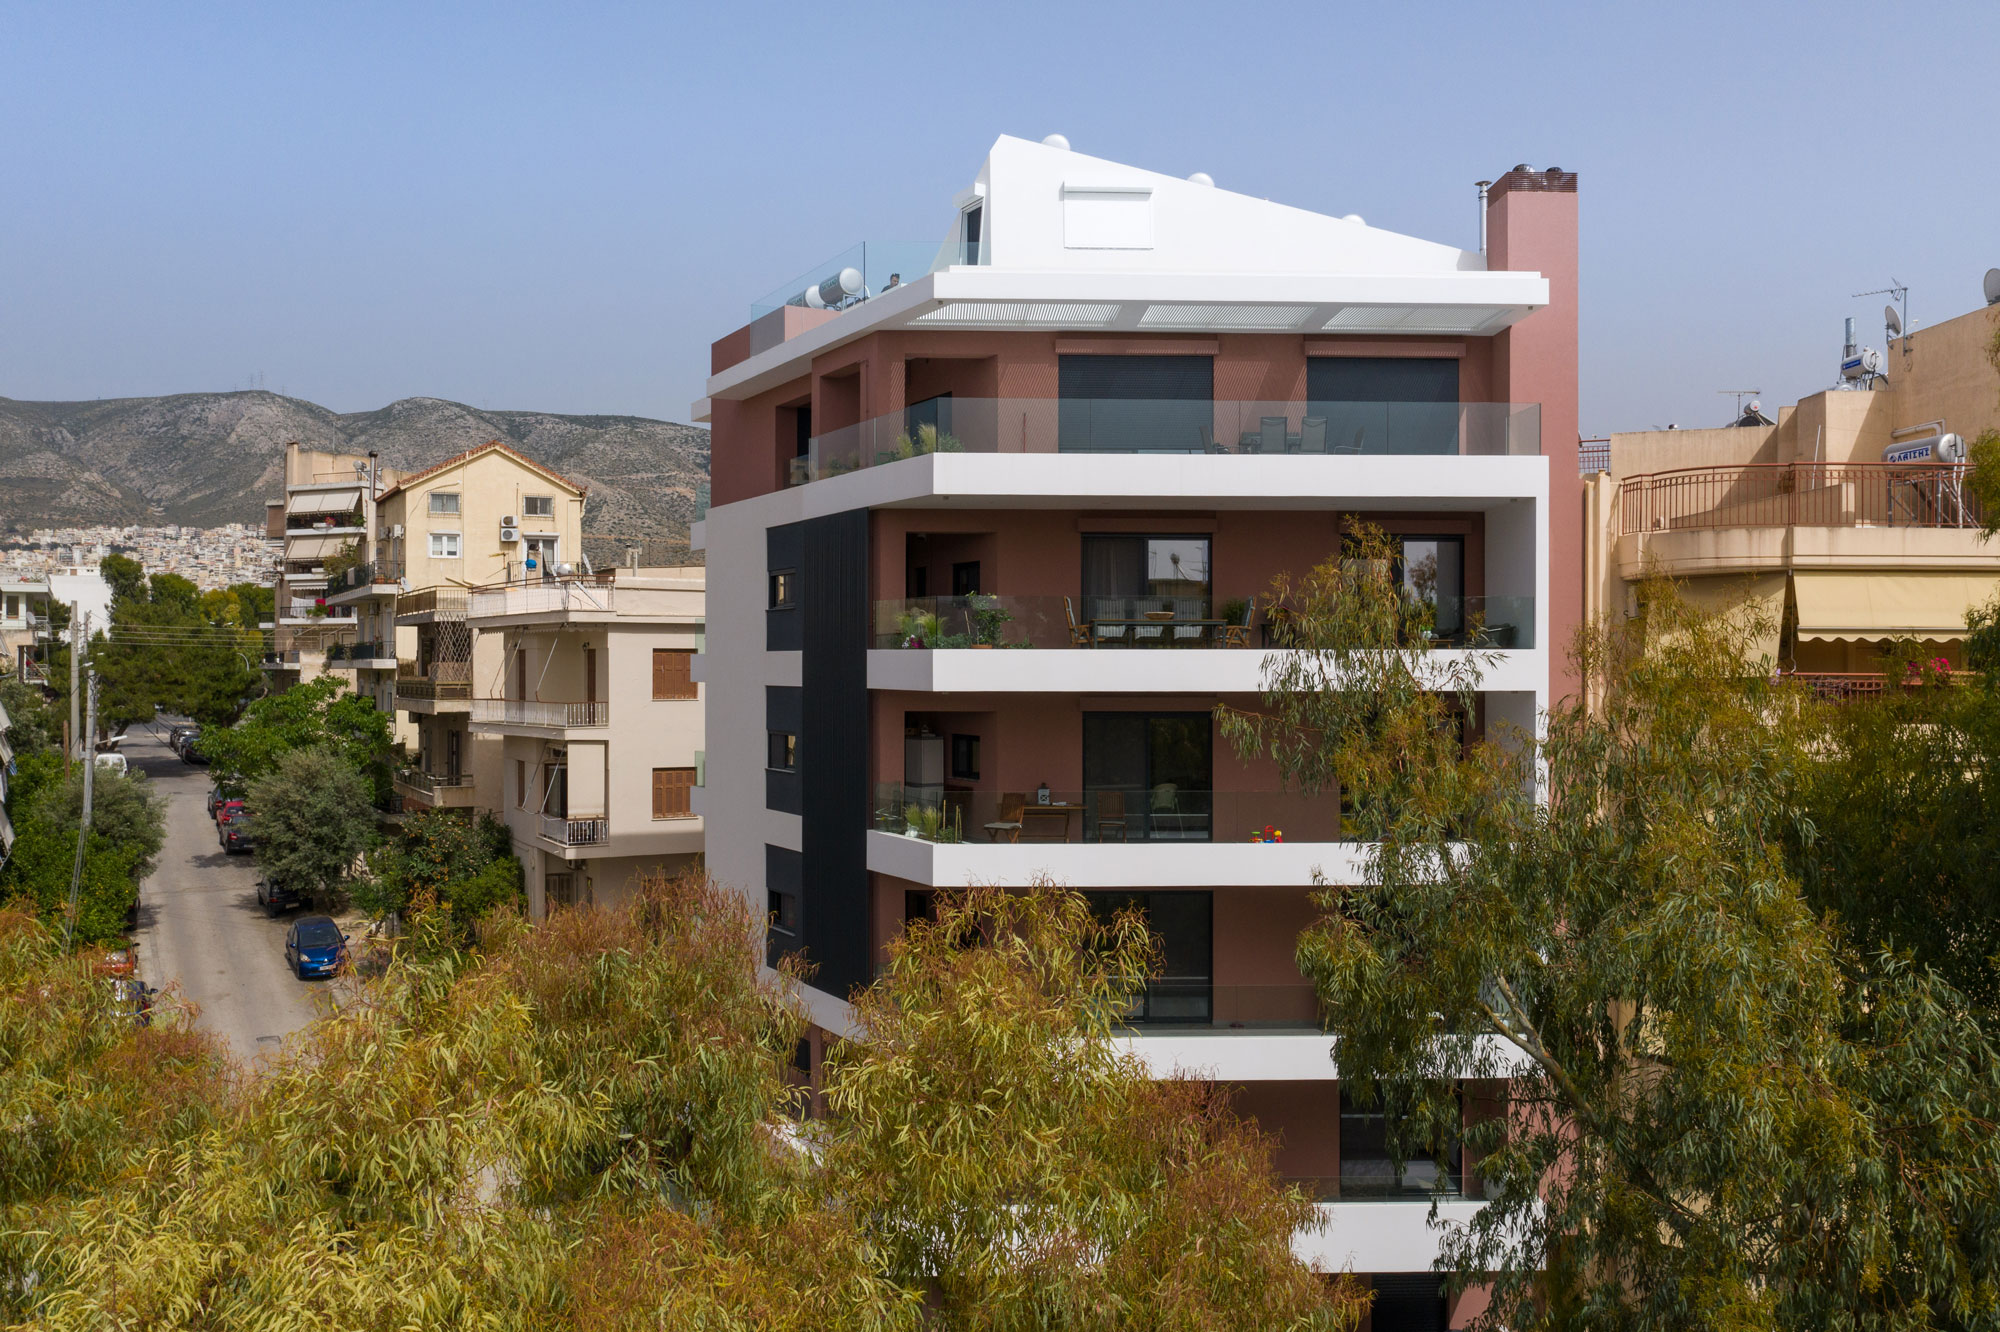 Alimos 4 apartment building by Axiacon